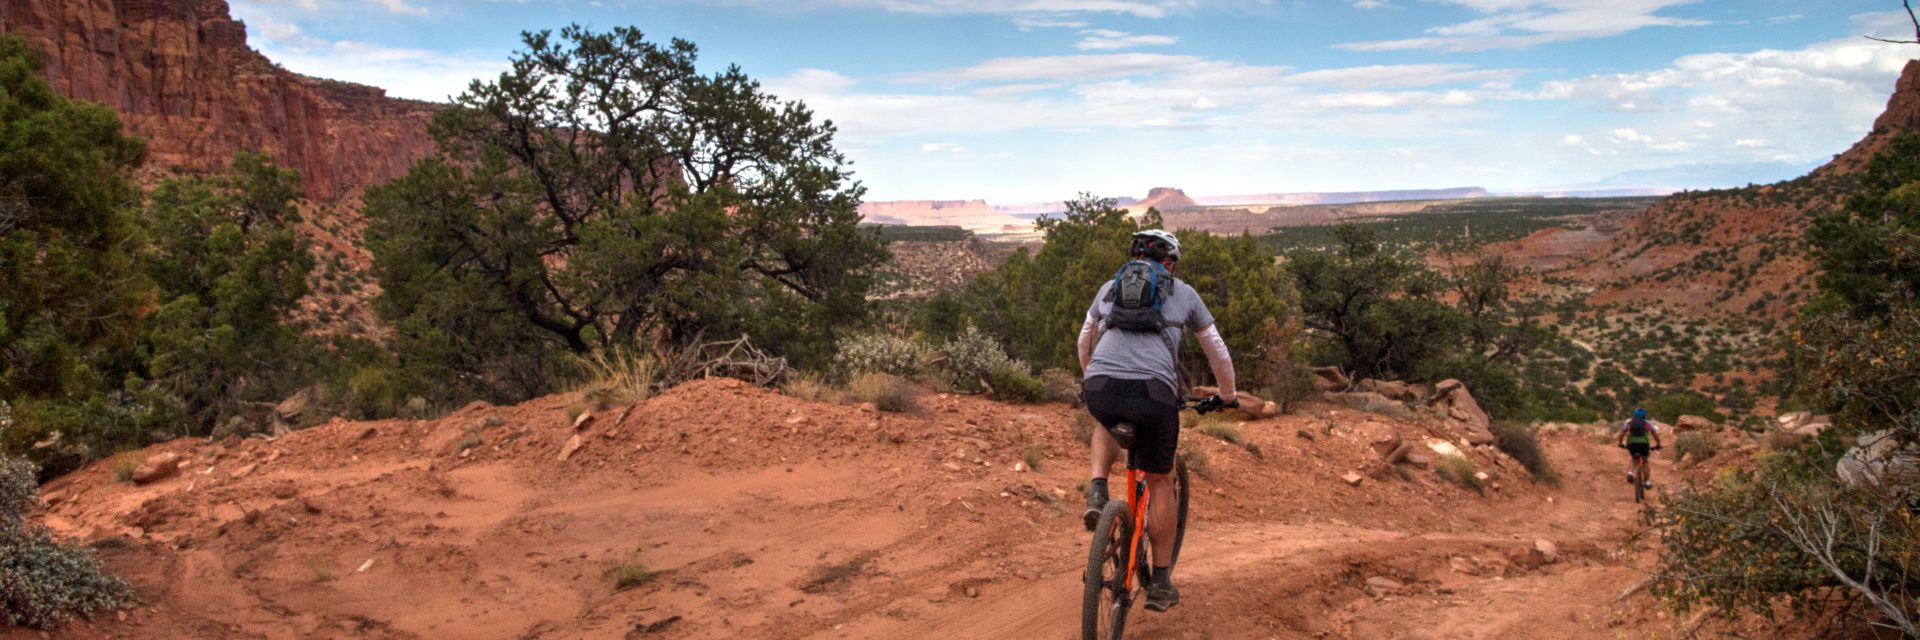 Mountain bikers descend The Flint Trail at the beginning of their guided mountain bike tour of The Maze in Canyonlands National Park